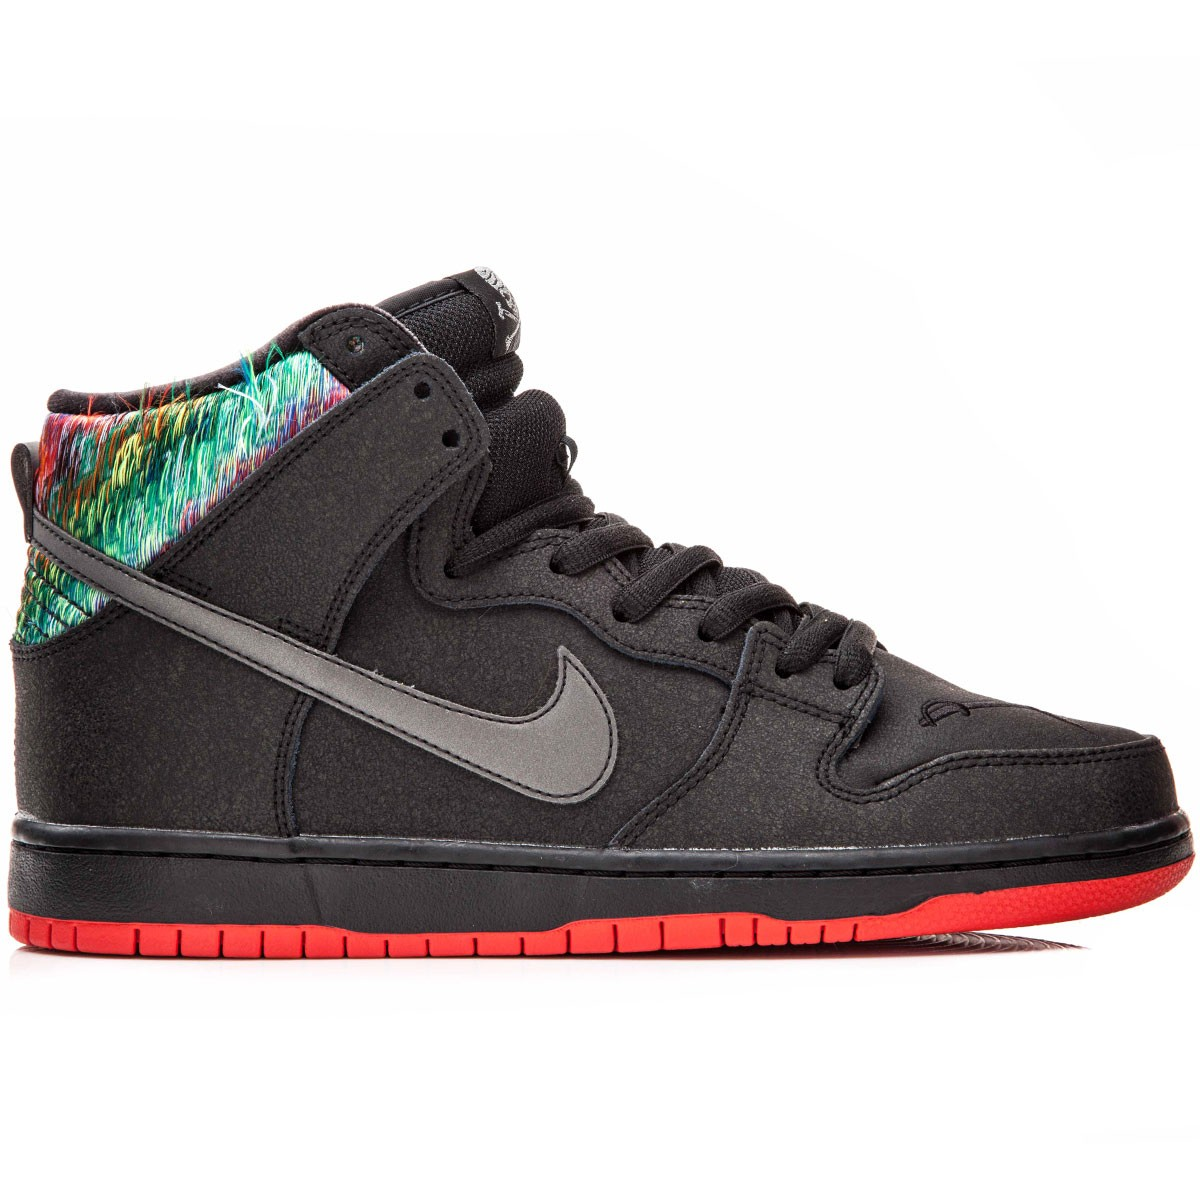 brand new d5367 f72a9 Nike SB X SPoT Dunk High Gasparilla Premium Shoes - Black Red Metallic  Silver